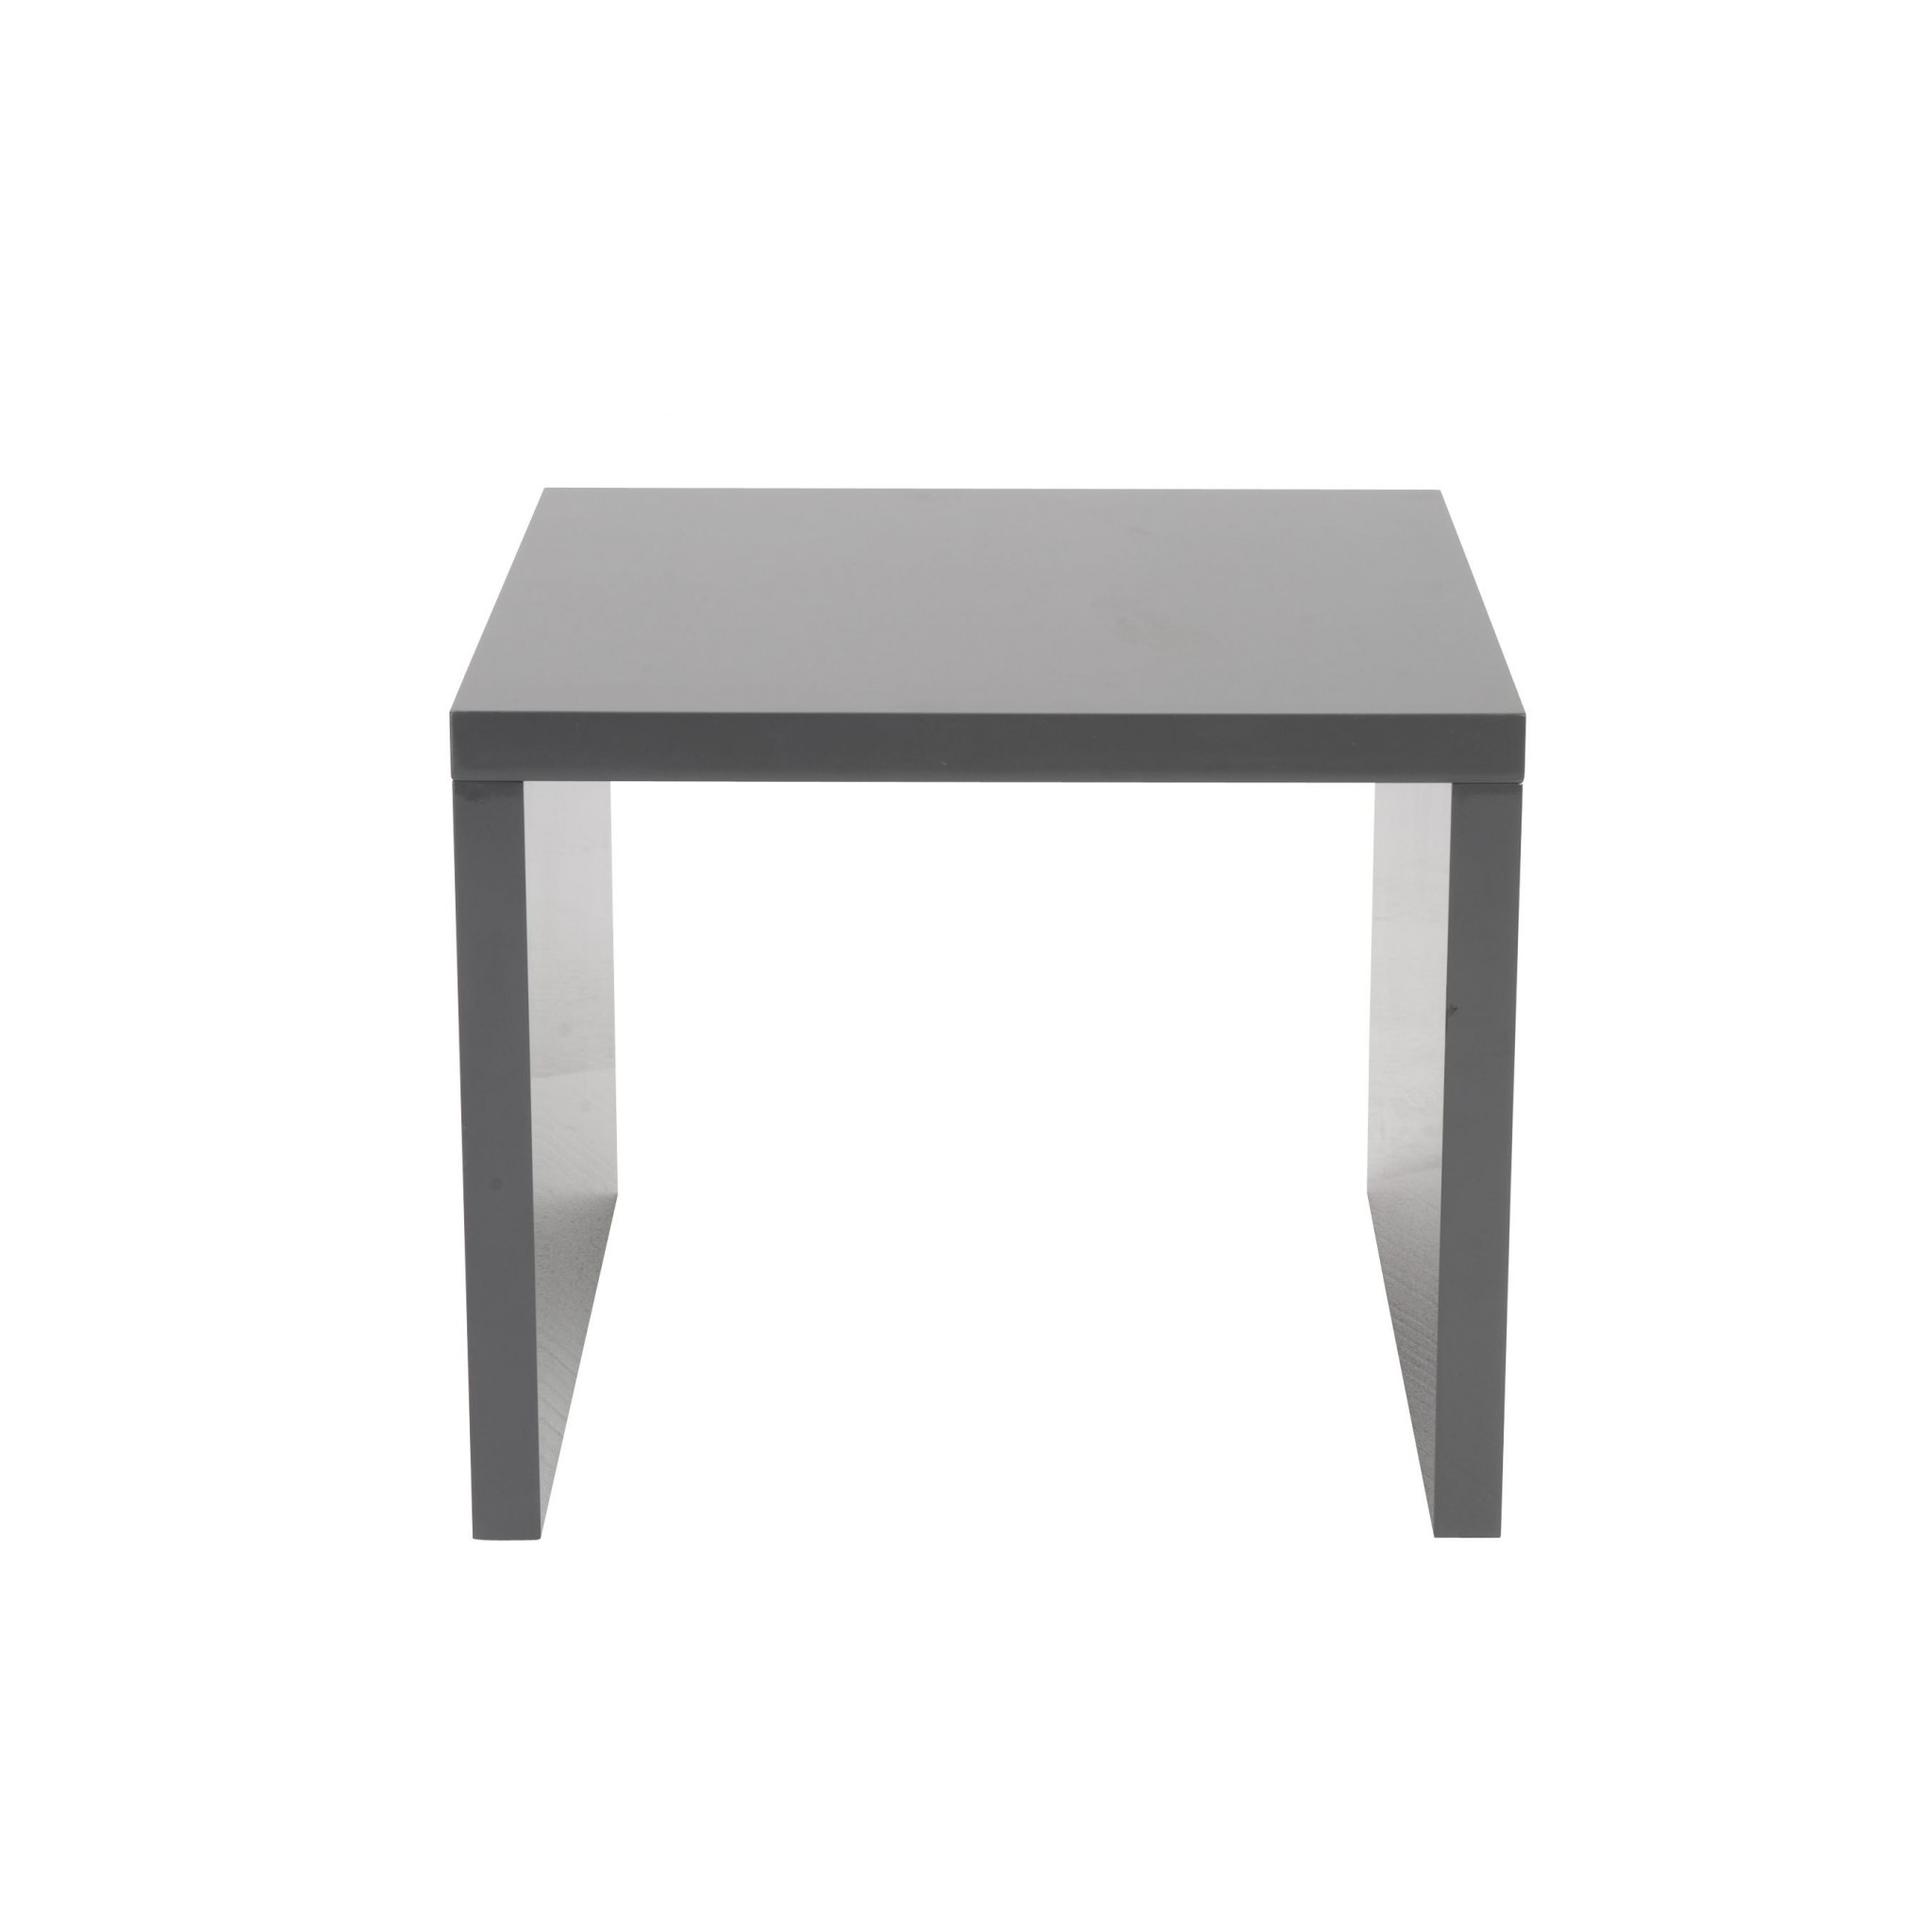 "23.63"" X 23.63"" X 20.08"" High Gloss Gray Lacquered MDF Square Side Table"